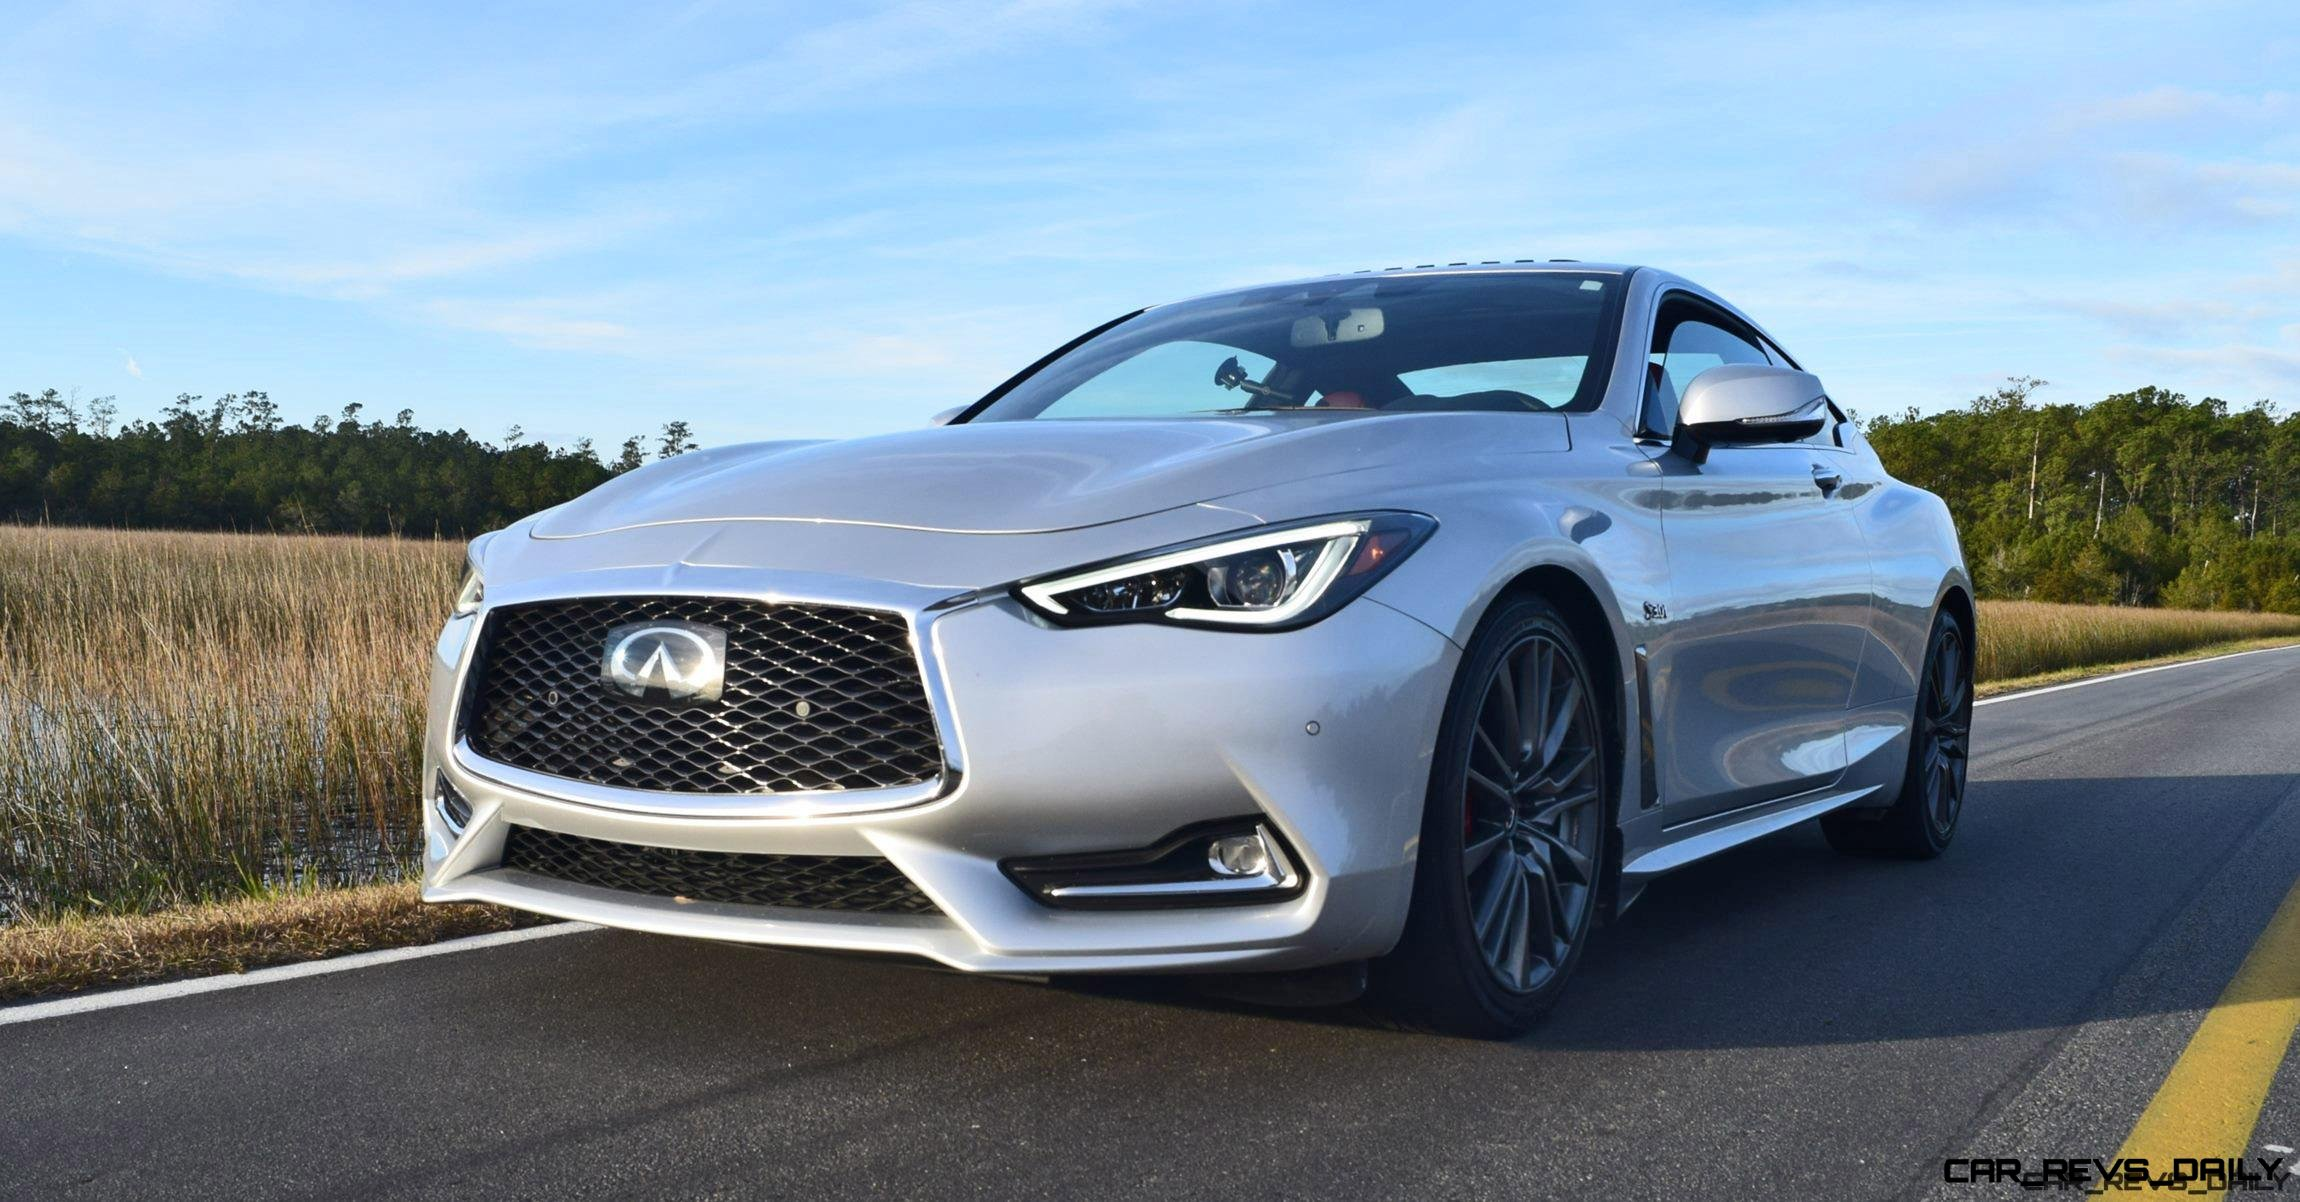 Check Out The Mega Gallery Of All Our Q60 Photos Over At This Link